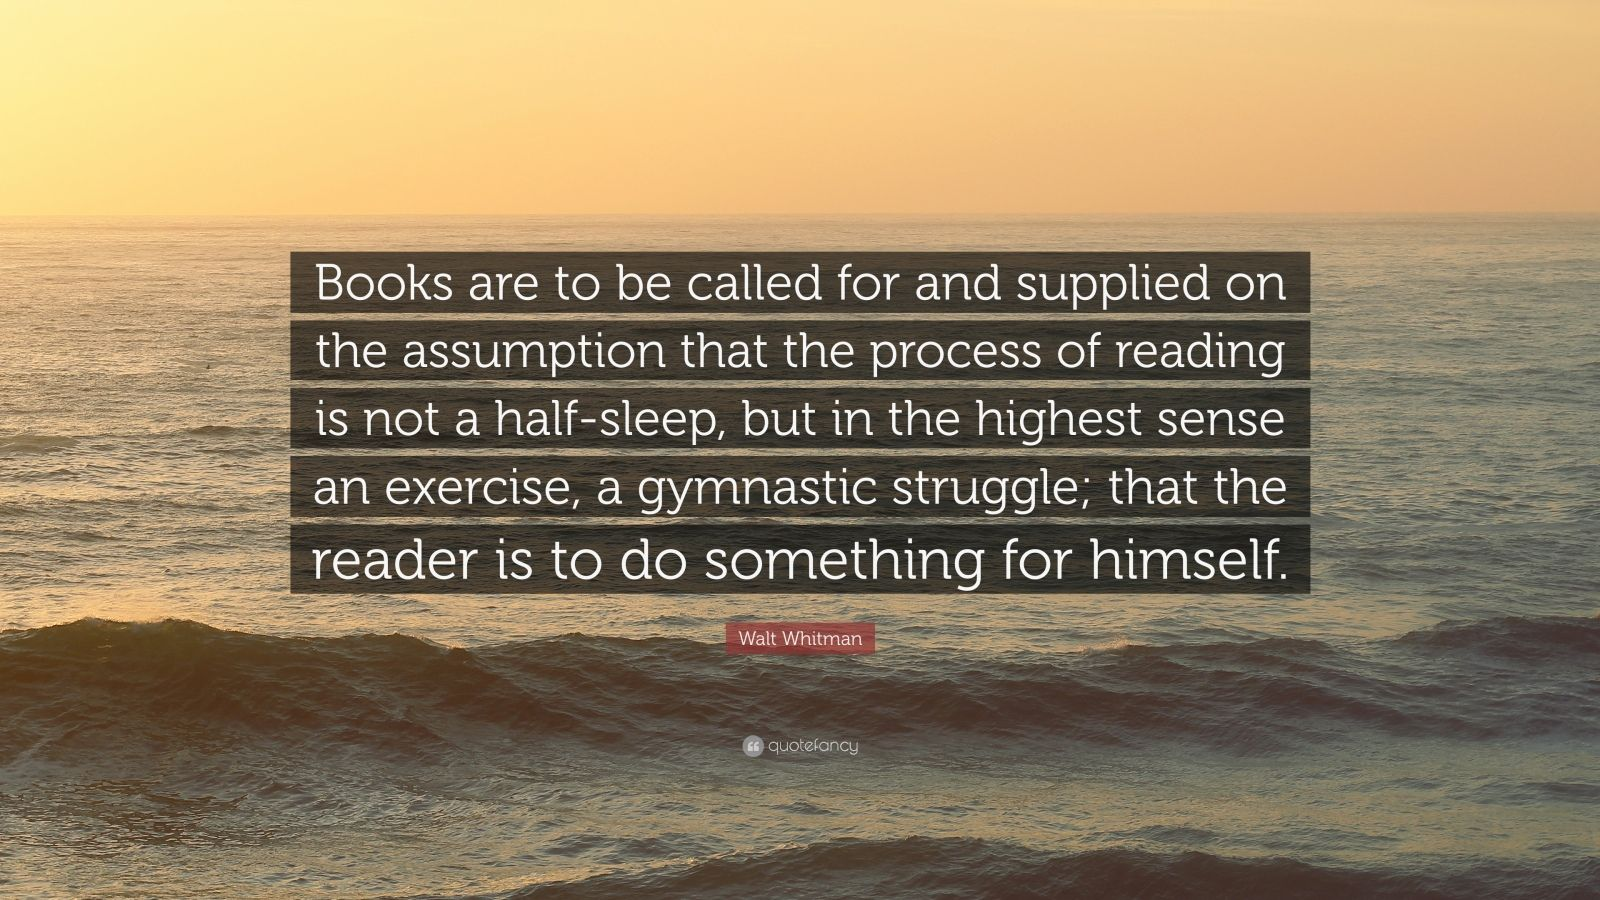 "Walt Whitman Quote: ""Books are to be called for and supplied on the assumption that the process of reading is not a half-sleep, but in the highest sense an exercise, a gymnastic struggle; that the reader is to do something for himself."""